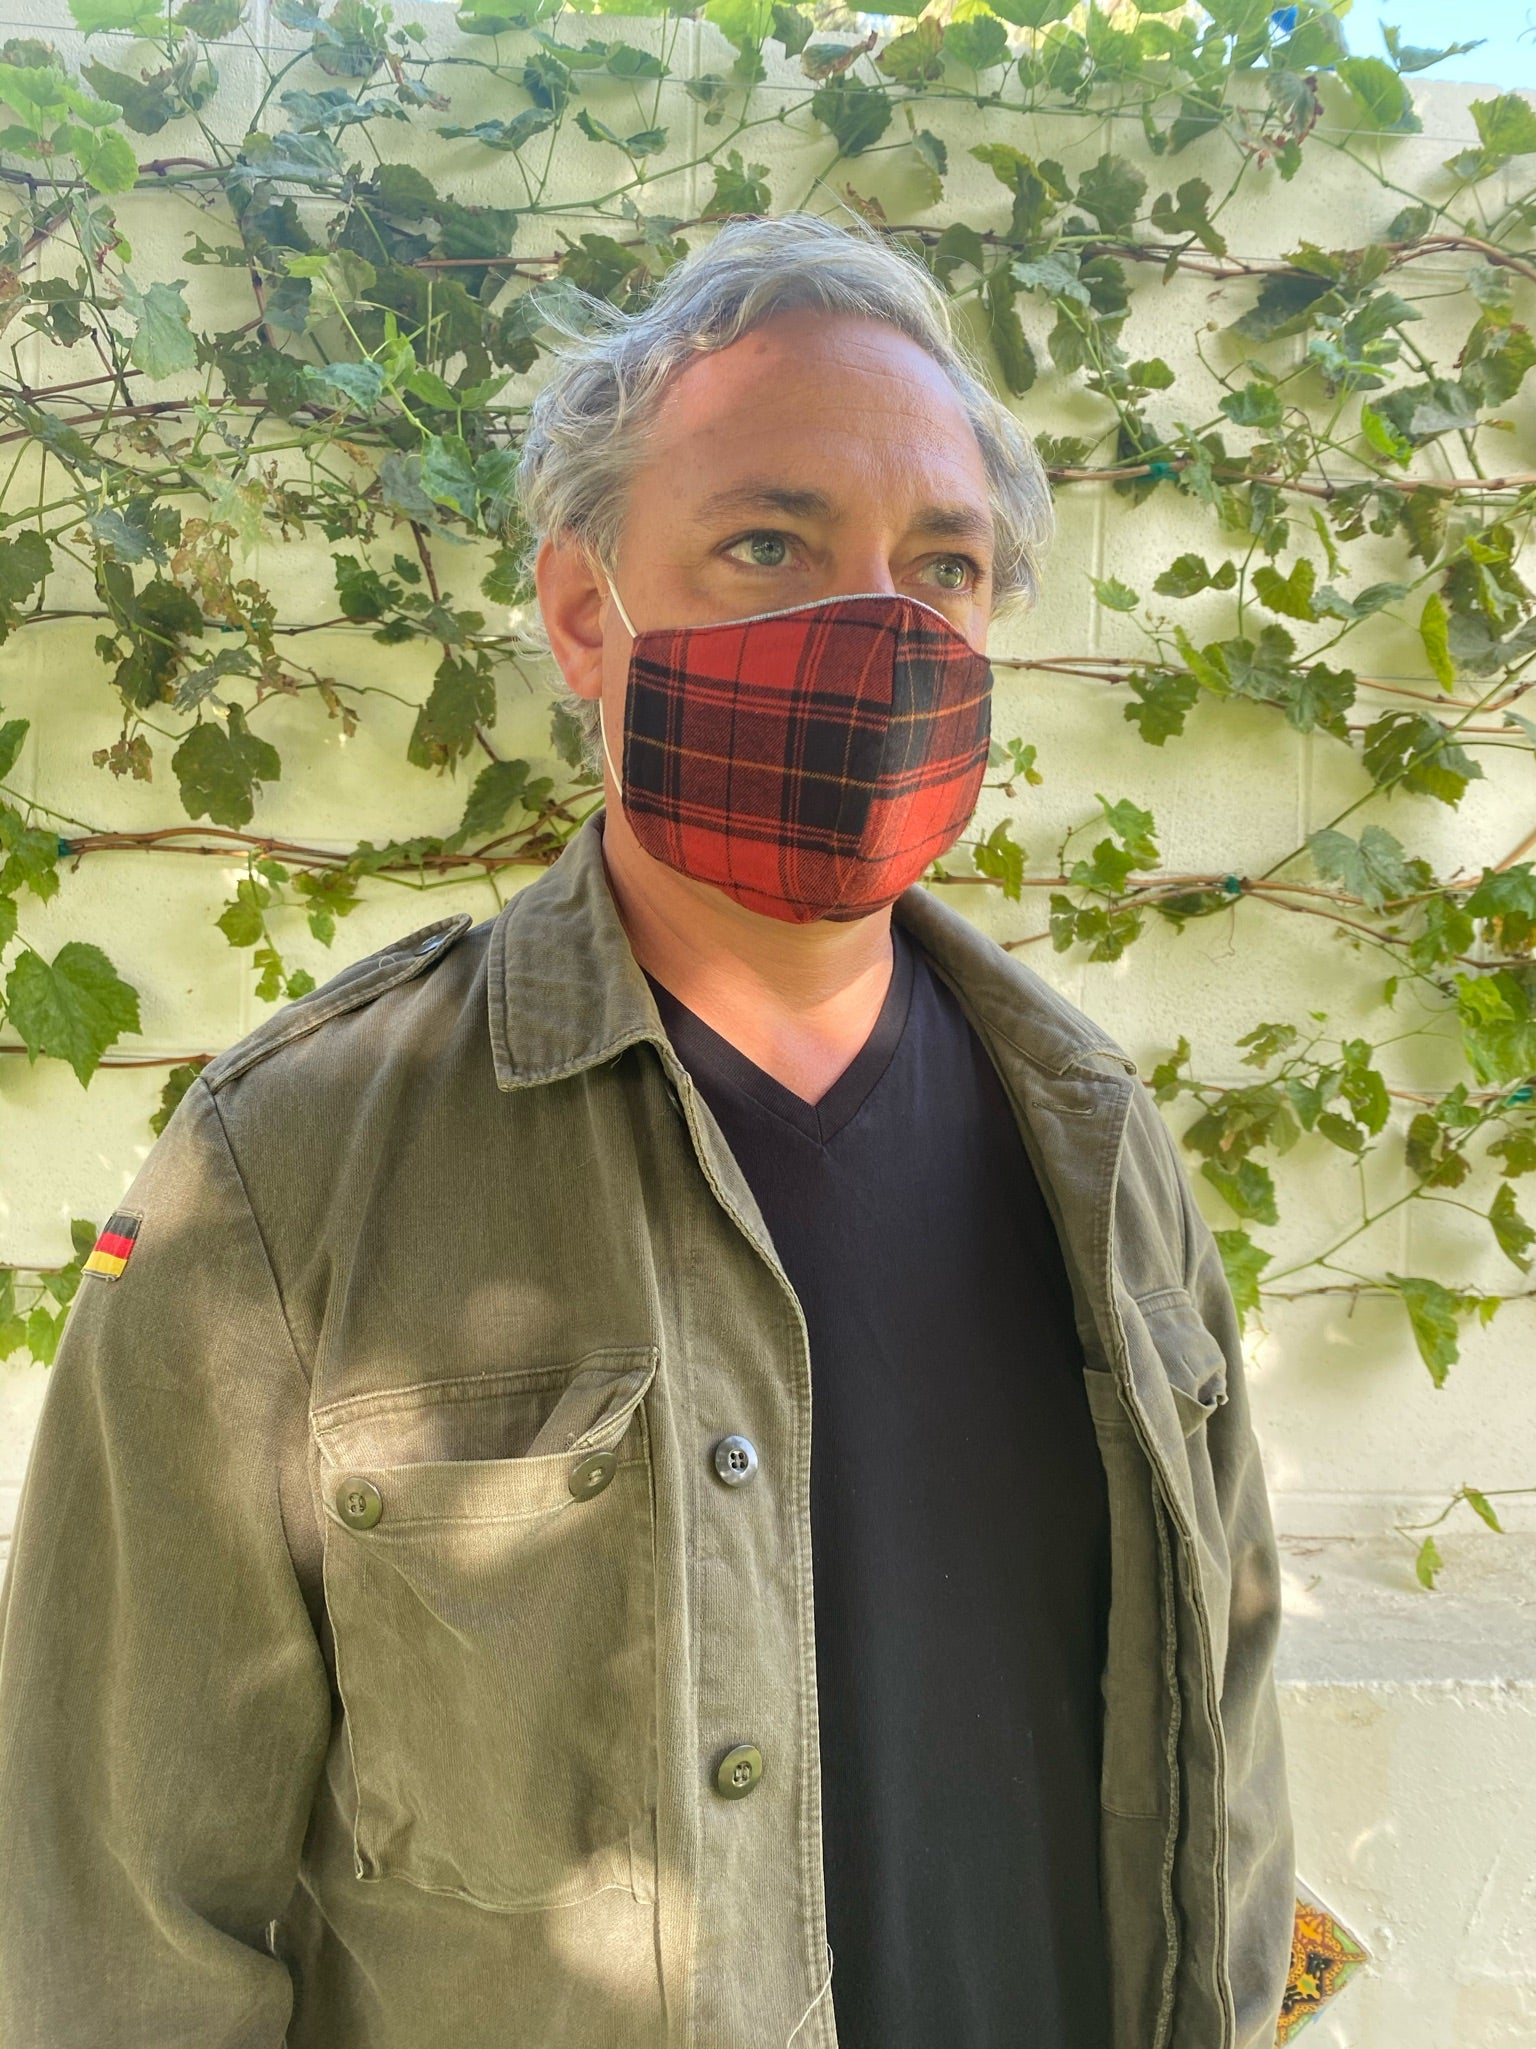 Jo Reversible Denim/Organic Tartan Mask